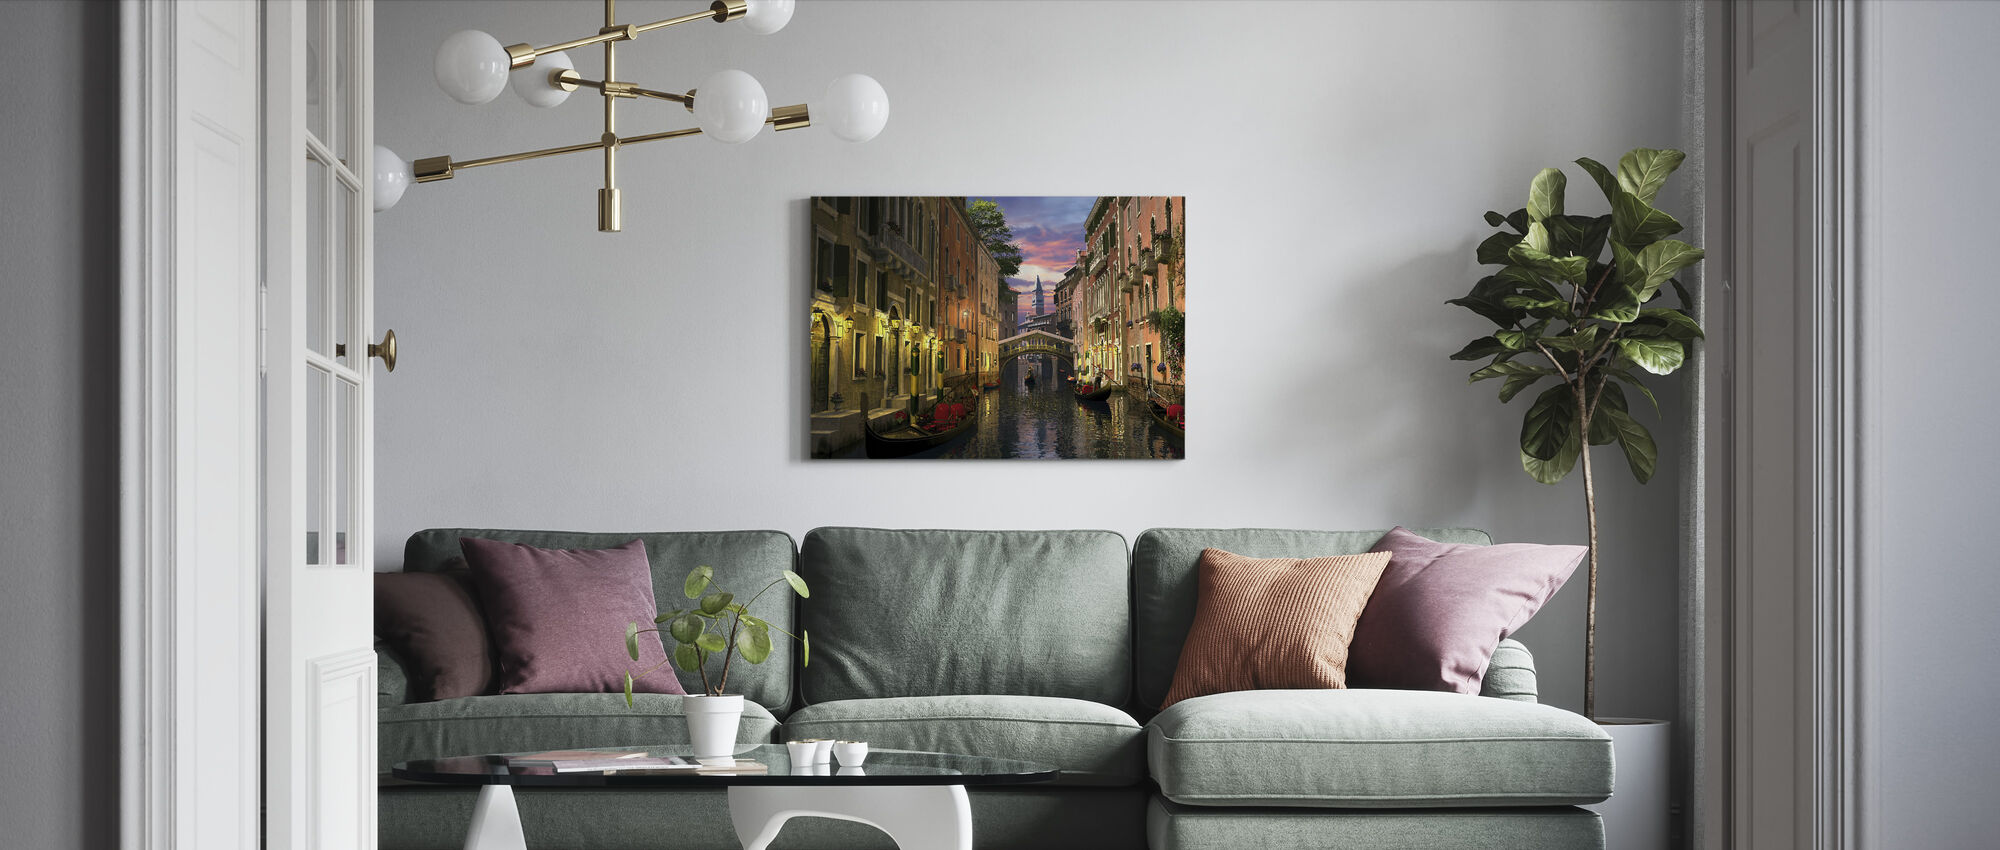 Venice at Dusk - Canvas print - Living Room